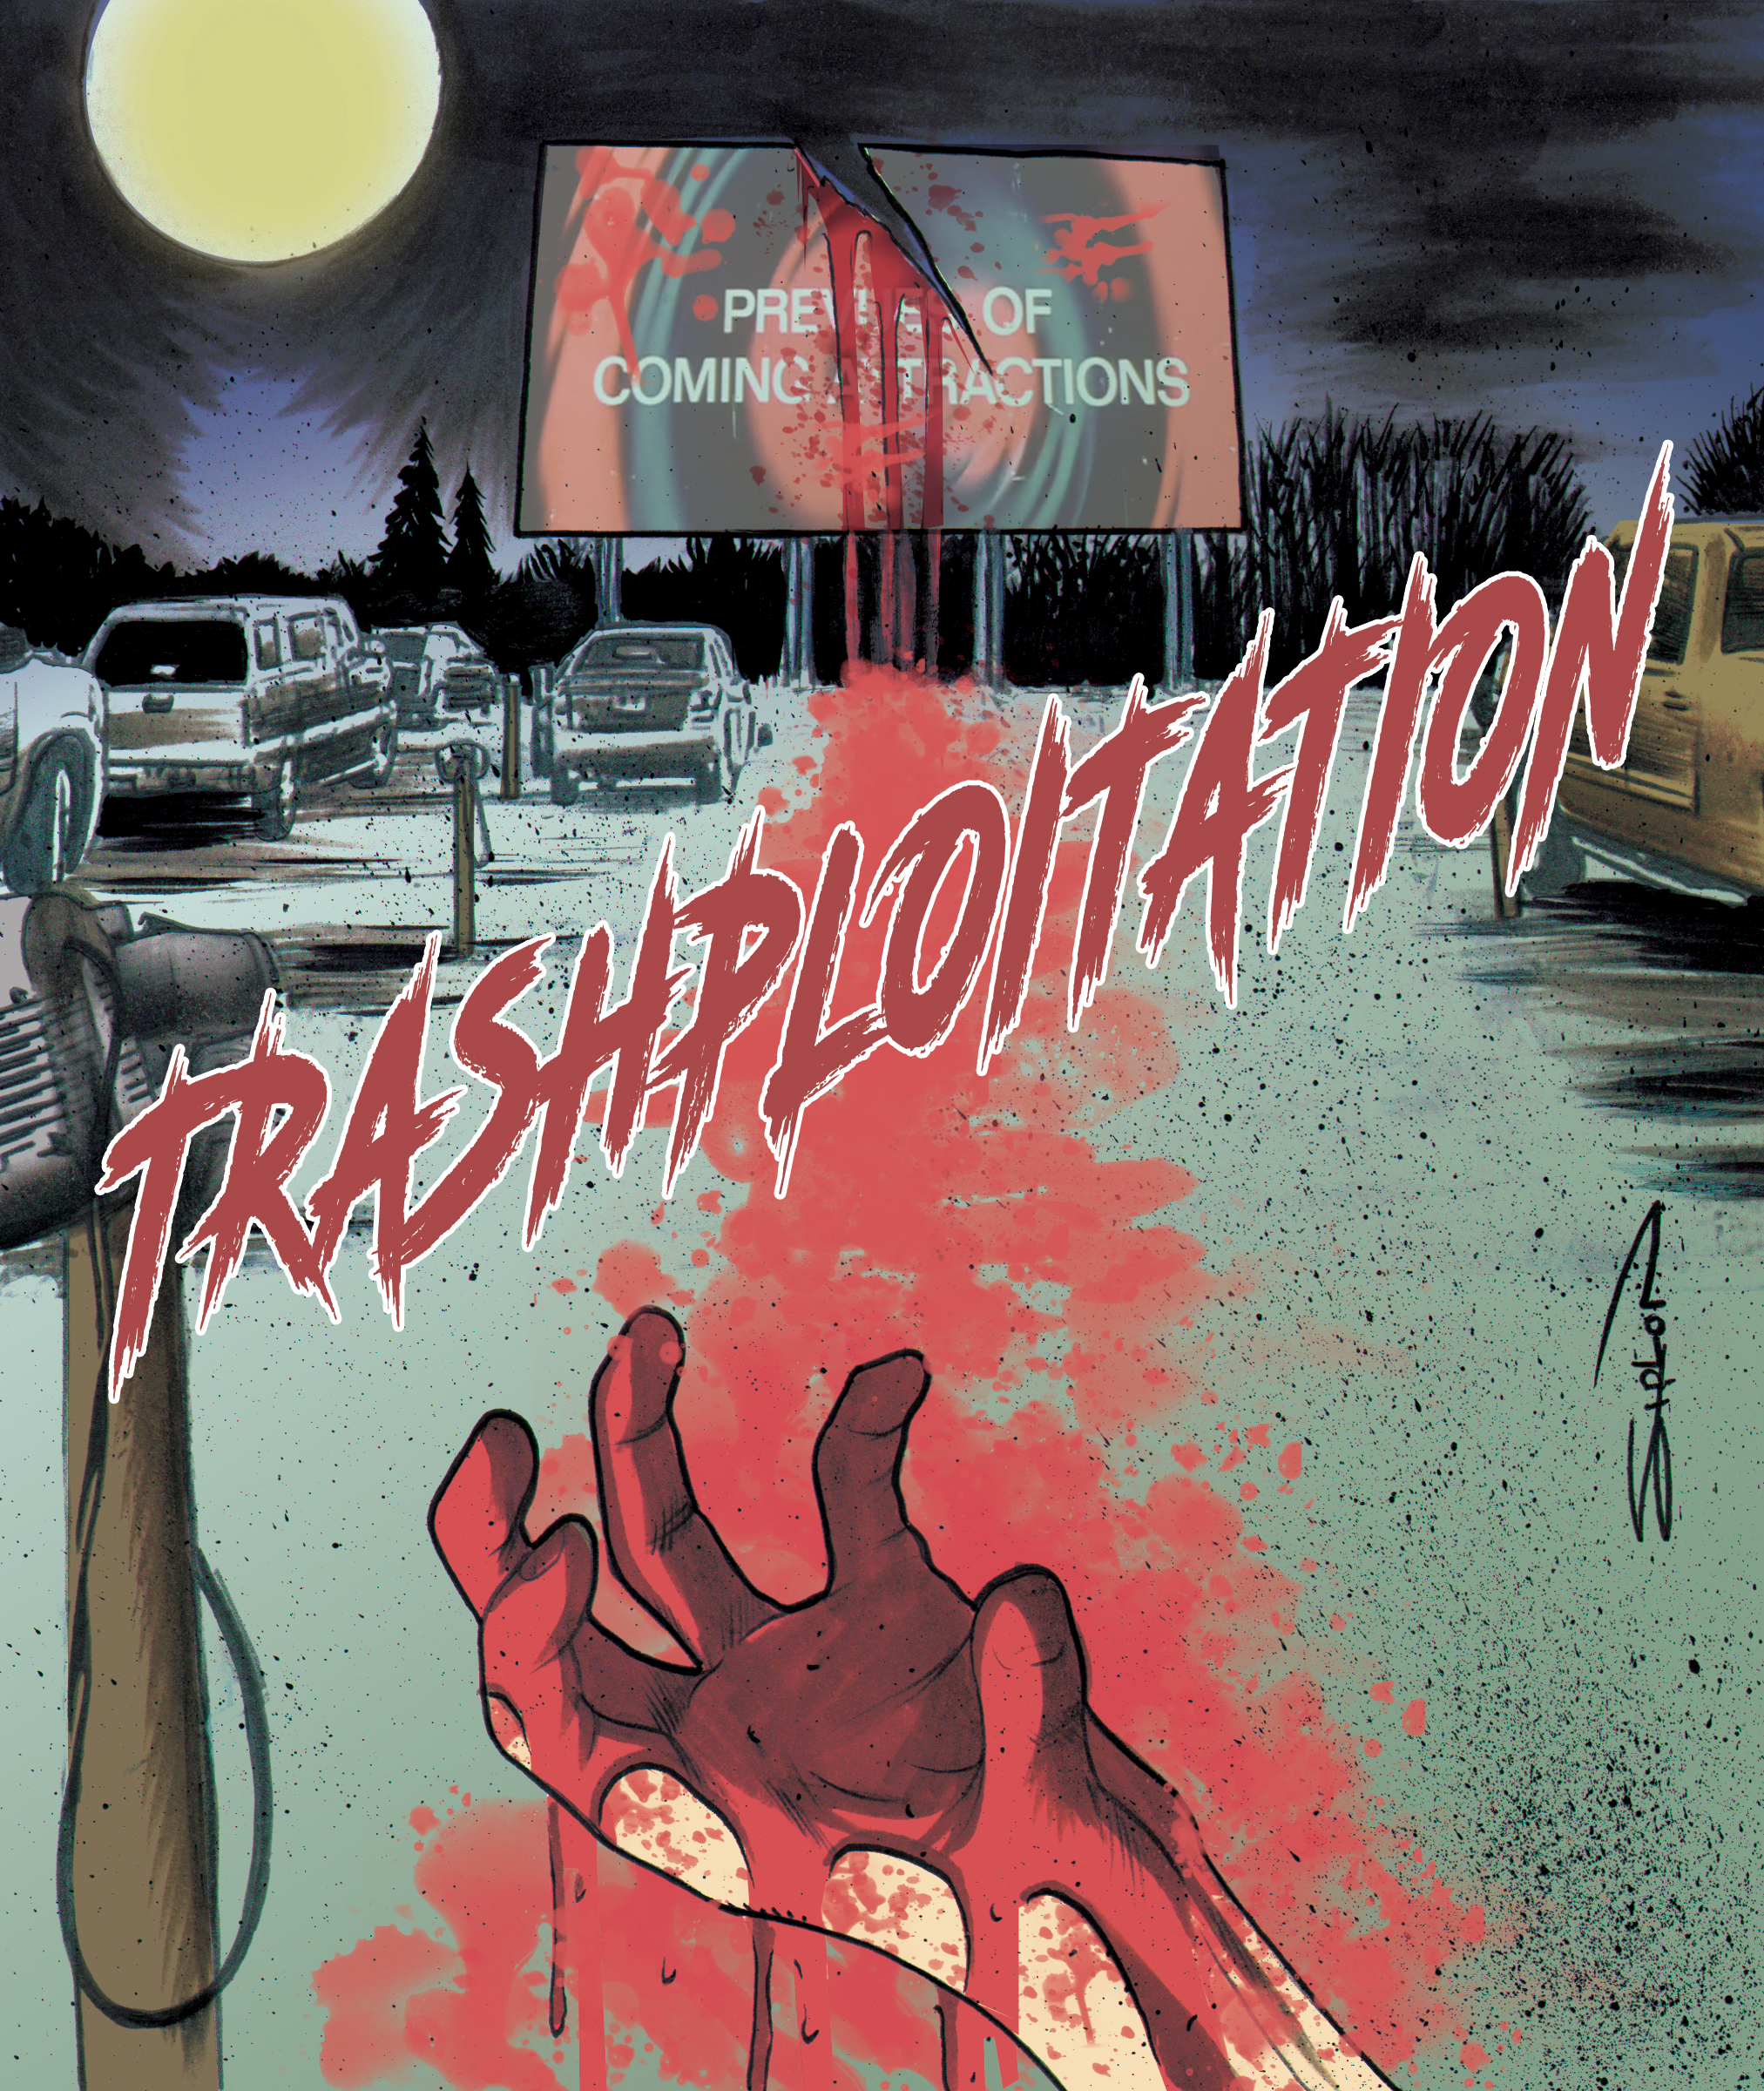 Trashsploitation 2018 a collection of horror exploitation b vestra pictures trashsploitation grindhouse horror sov trash exploitation film trailers the greatest collection of current underground movie trailers sciox Gallery